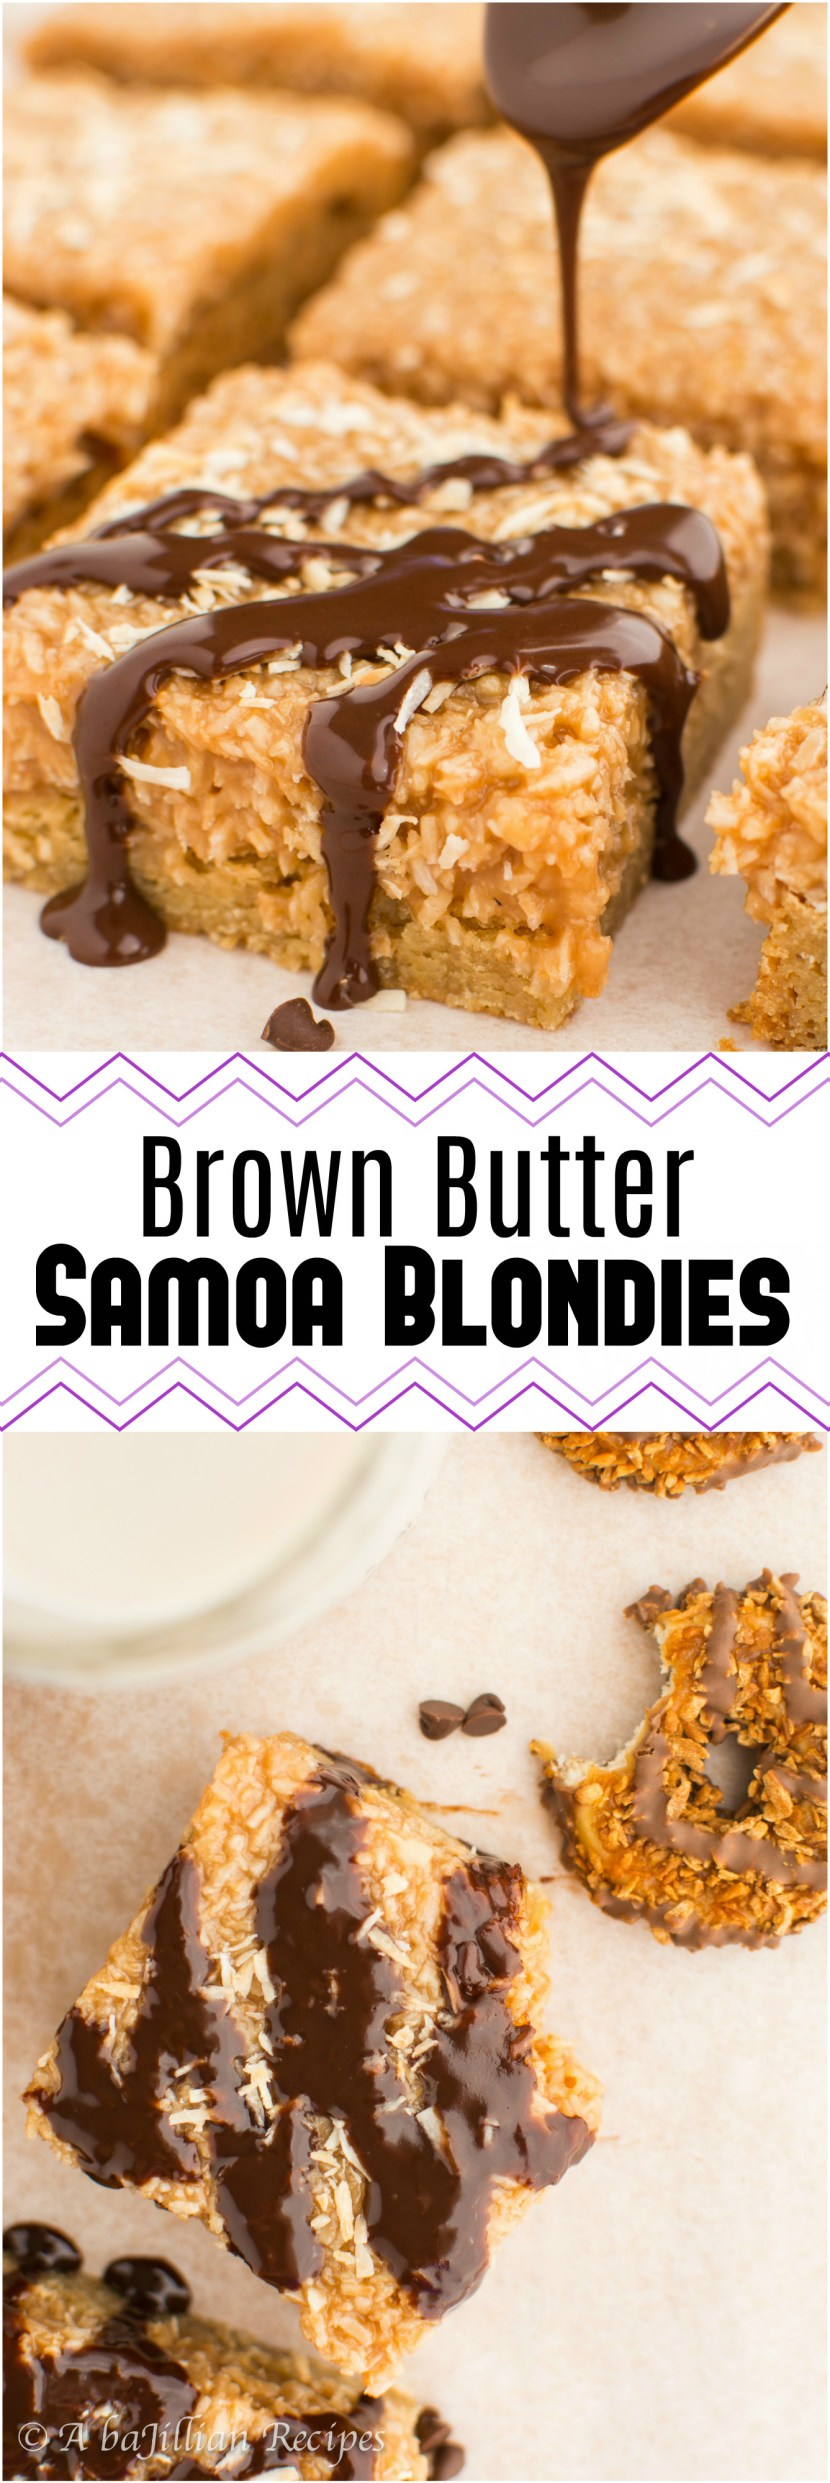 Samoa-Blondies-abajillianrecipes.com4